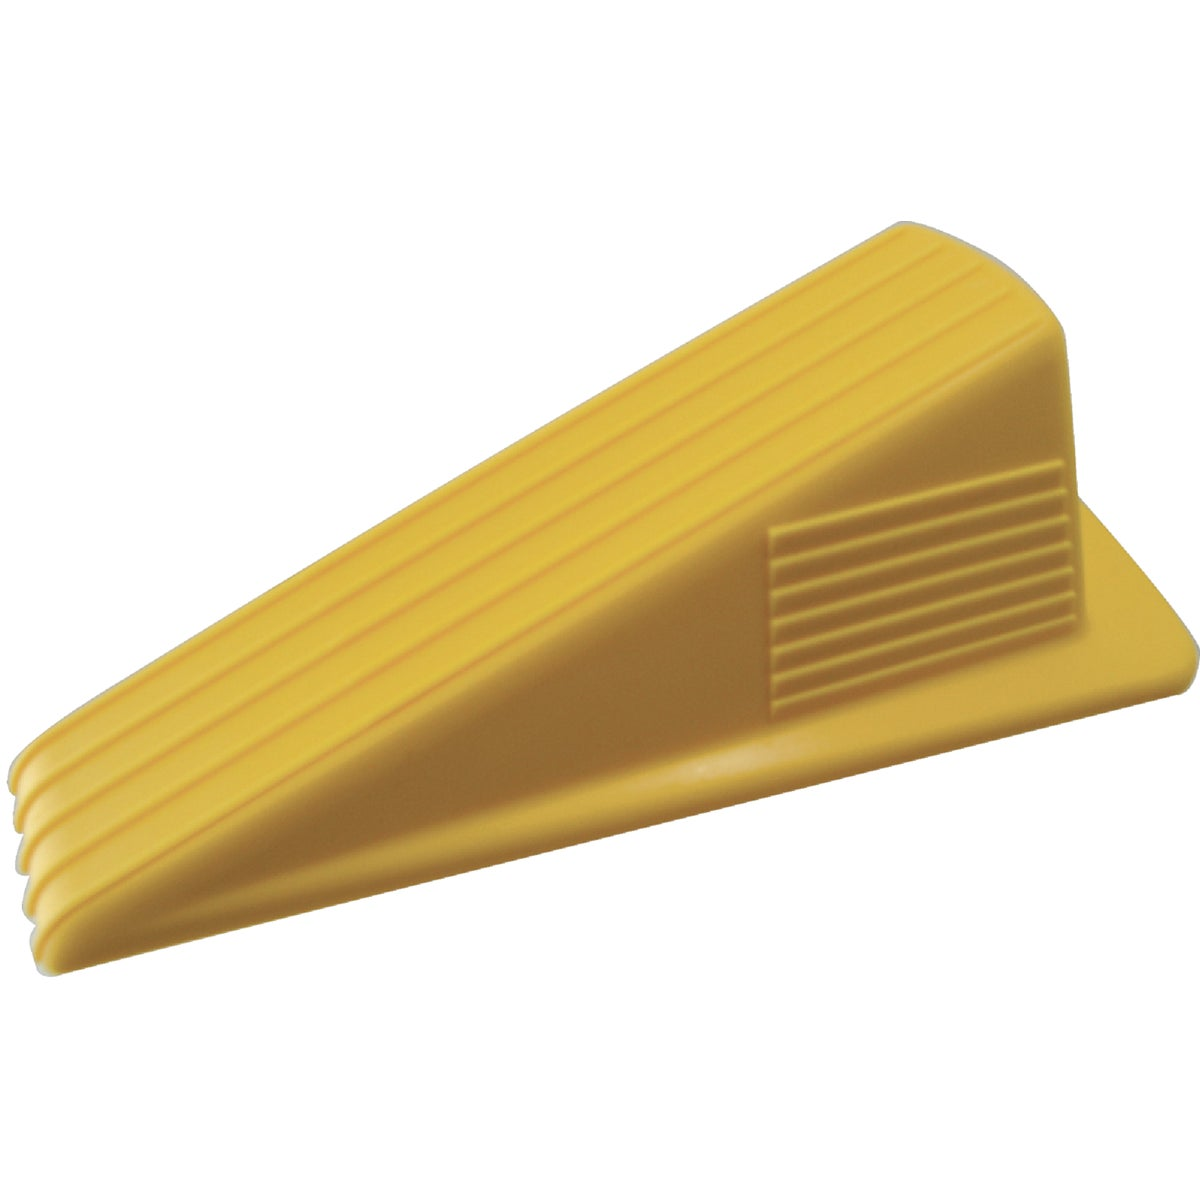 JUMBO DOOR STOP - 227587 by Shepherd Hardware